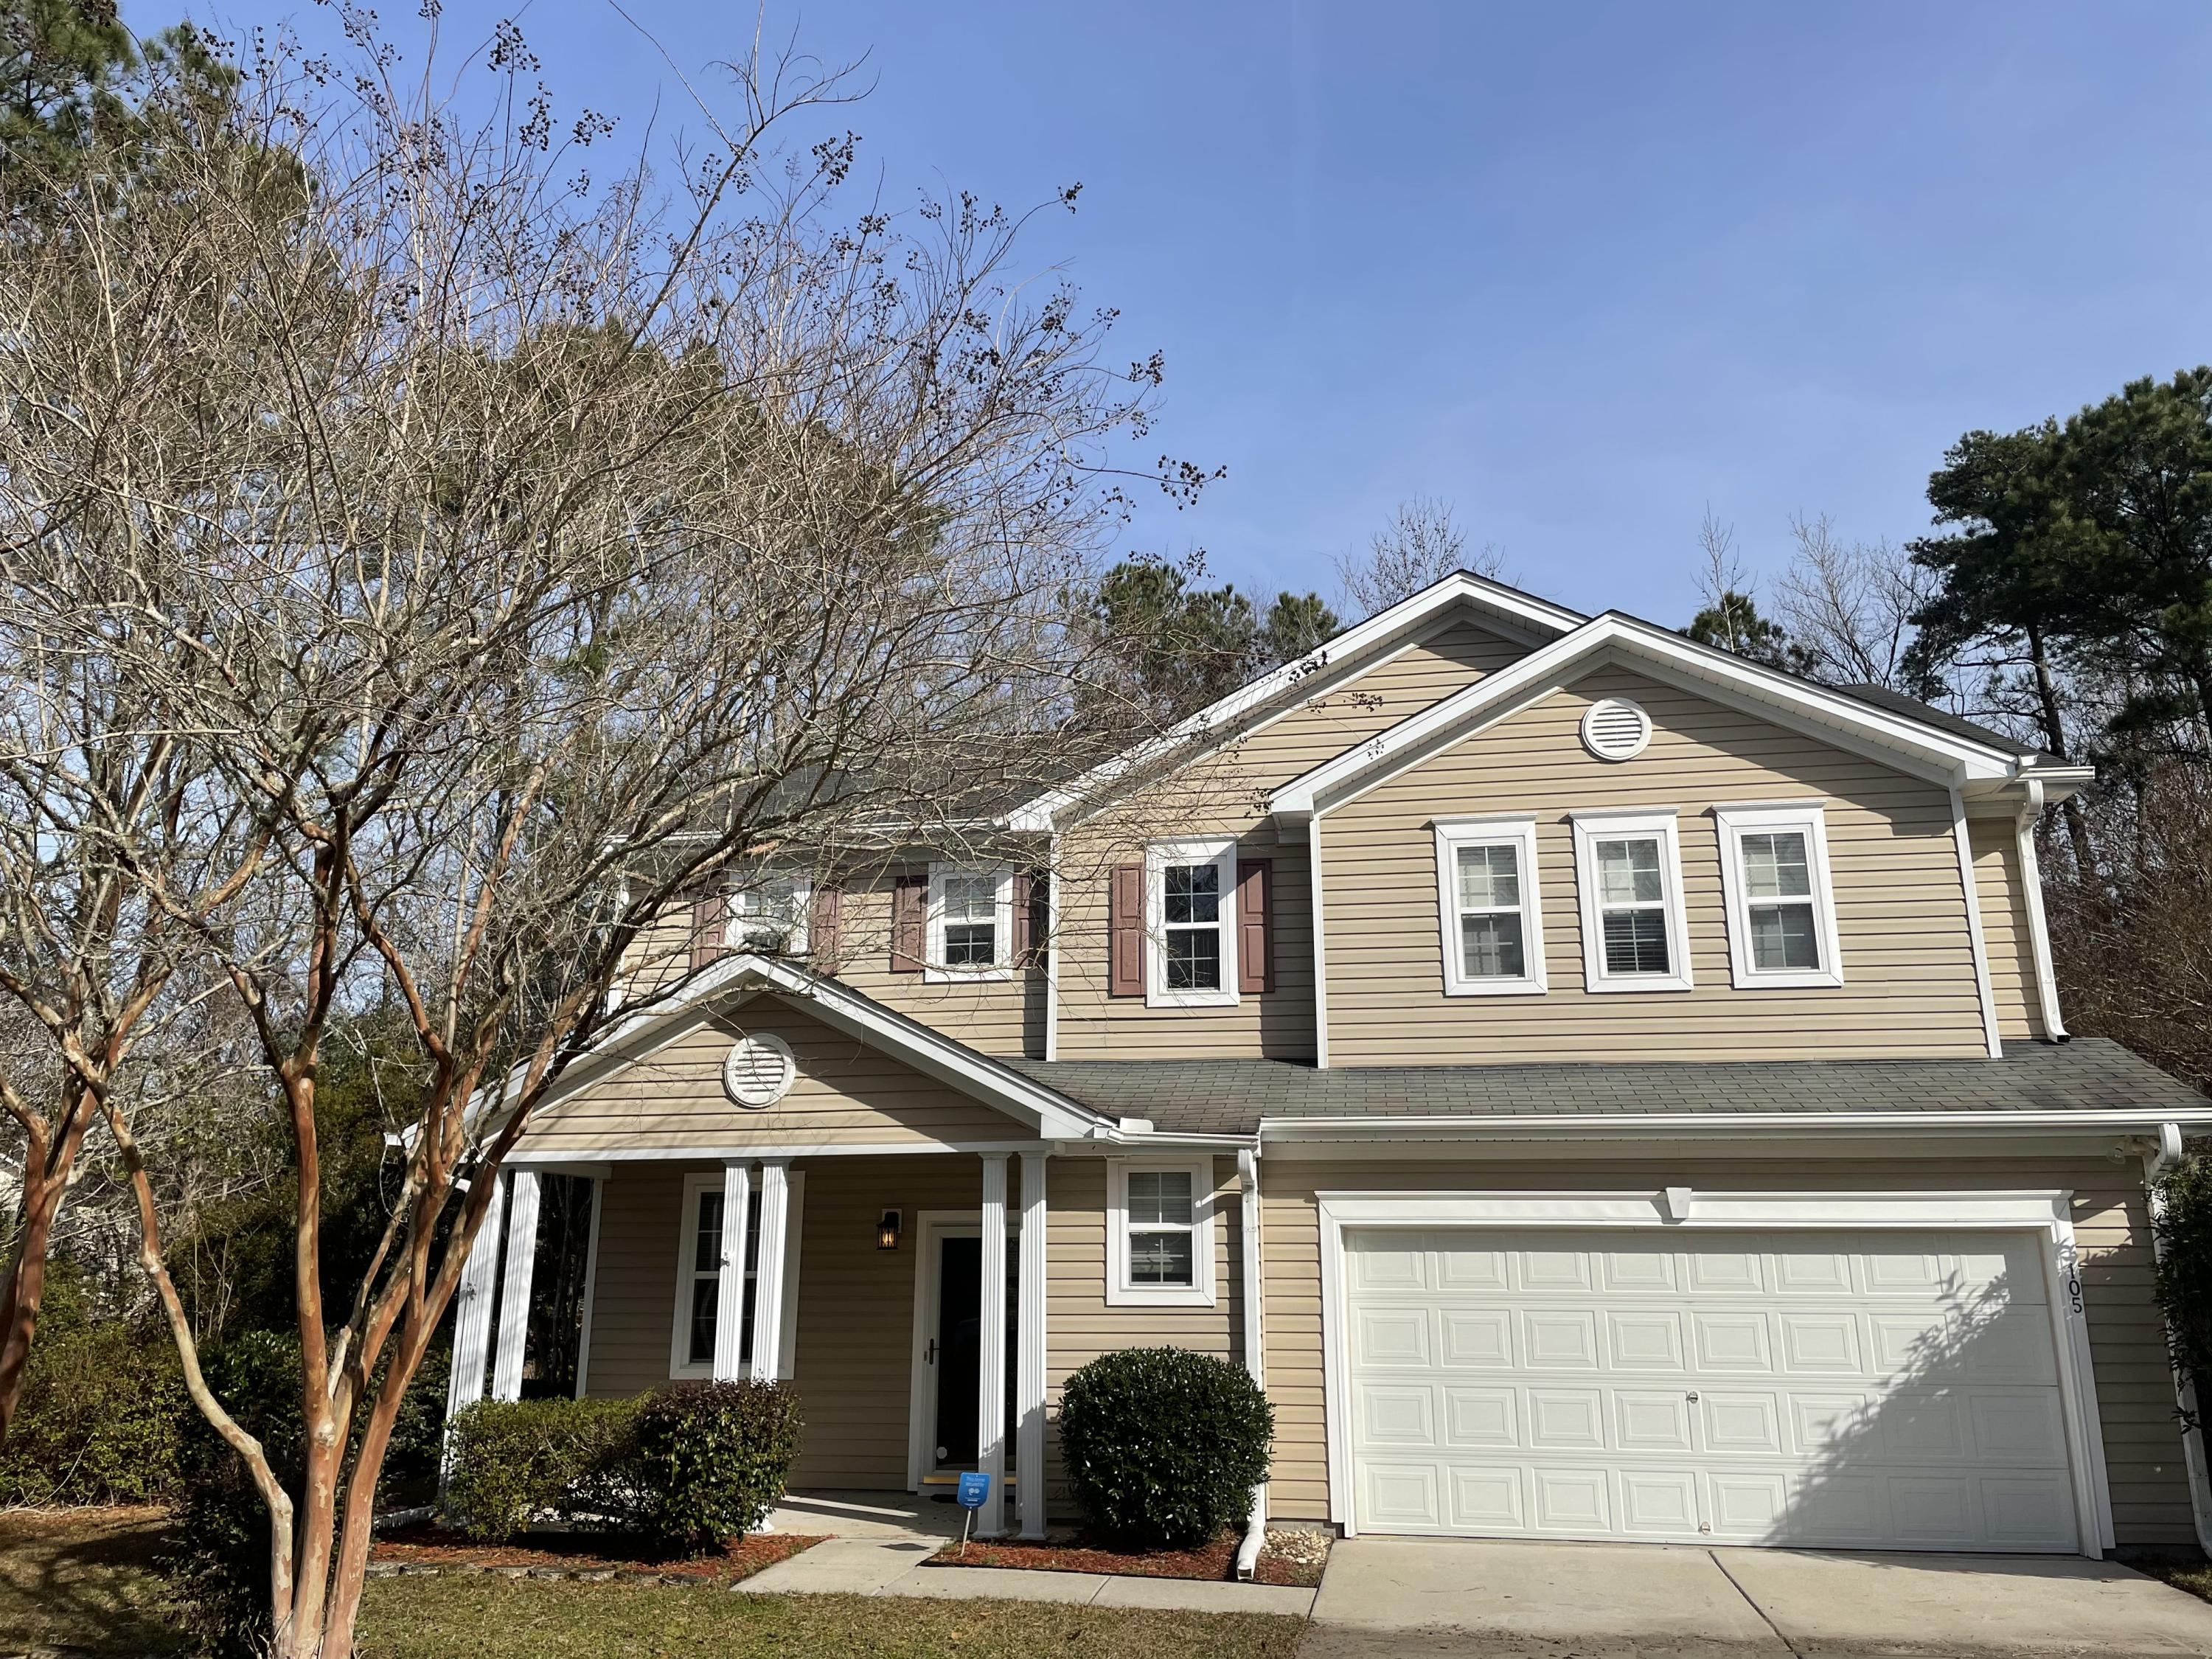 105 Arithmetic Court Ladson, Sc 29456